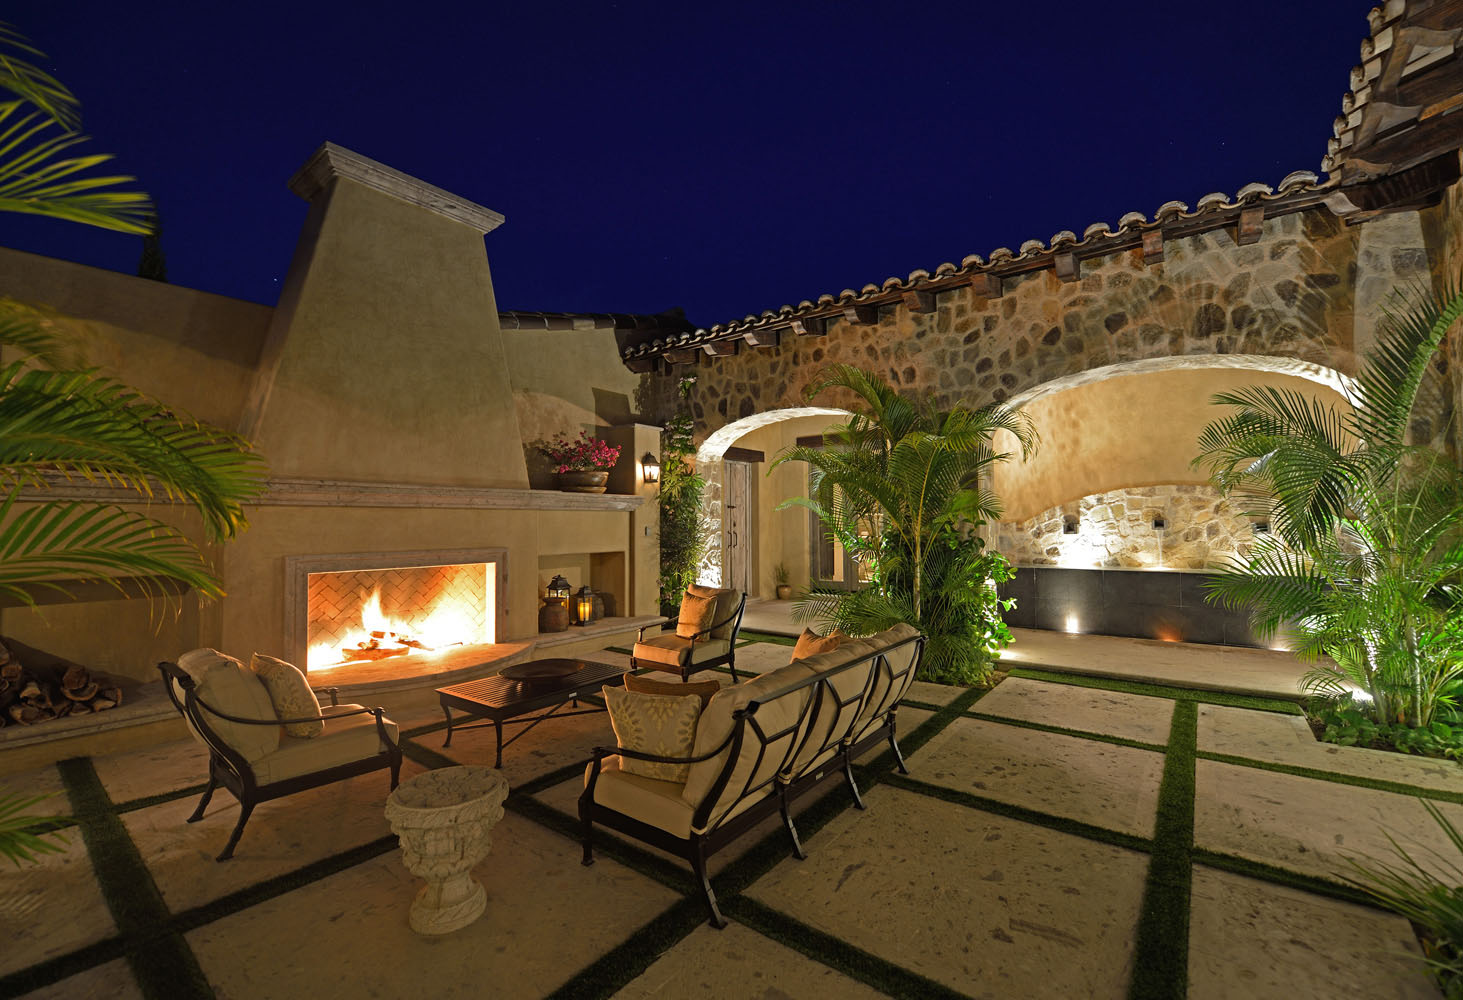 Spectacular Ocean View Estate In The Baja Peninsula : iDesignArch : Interior Design ...